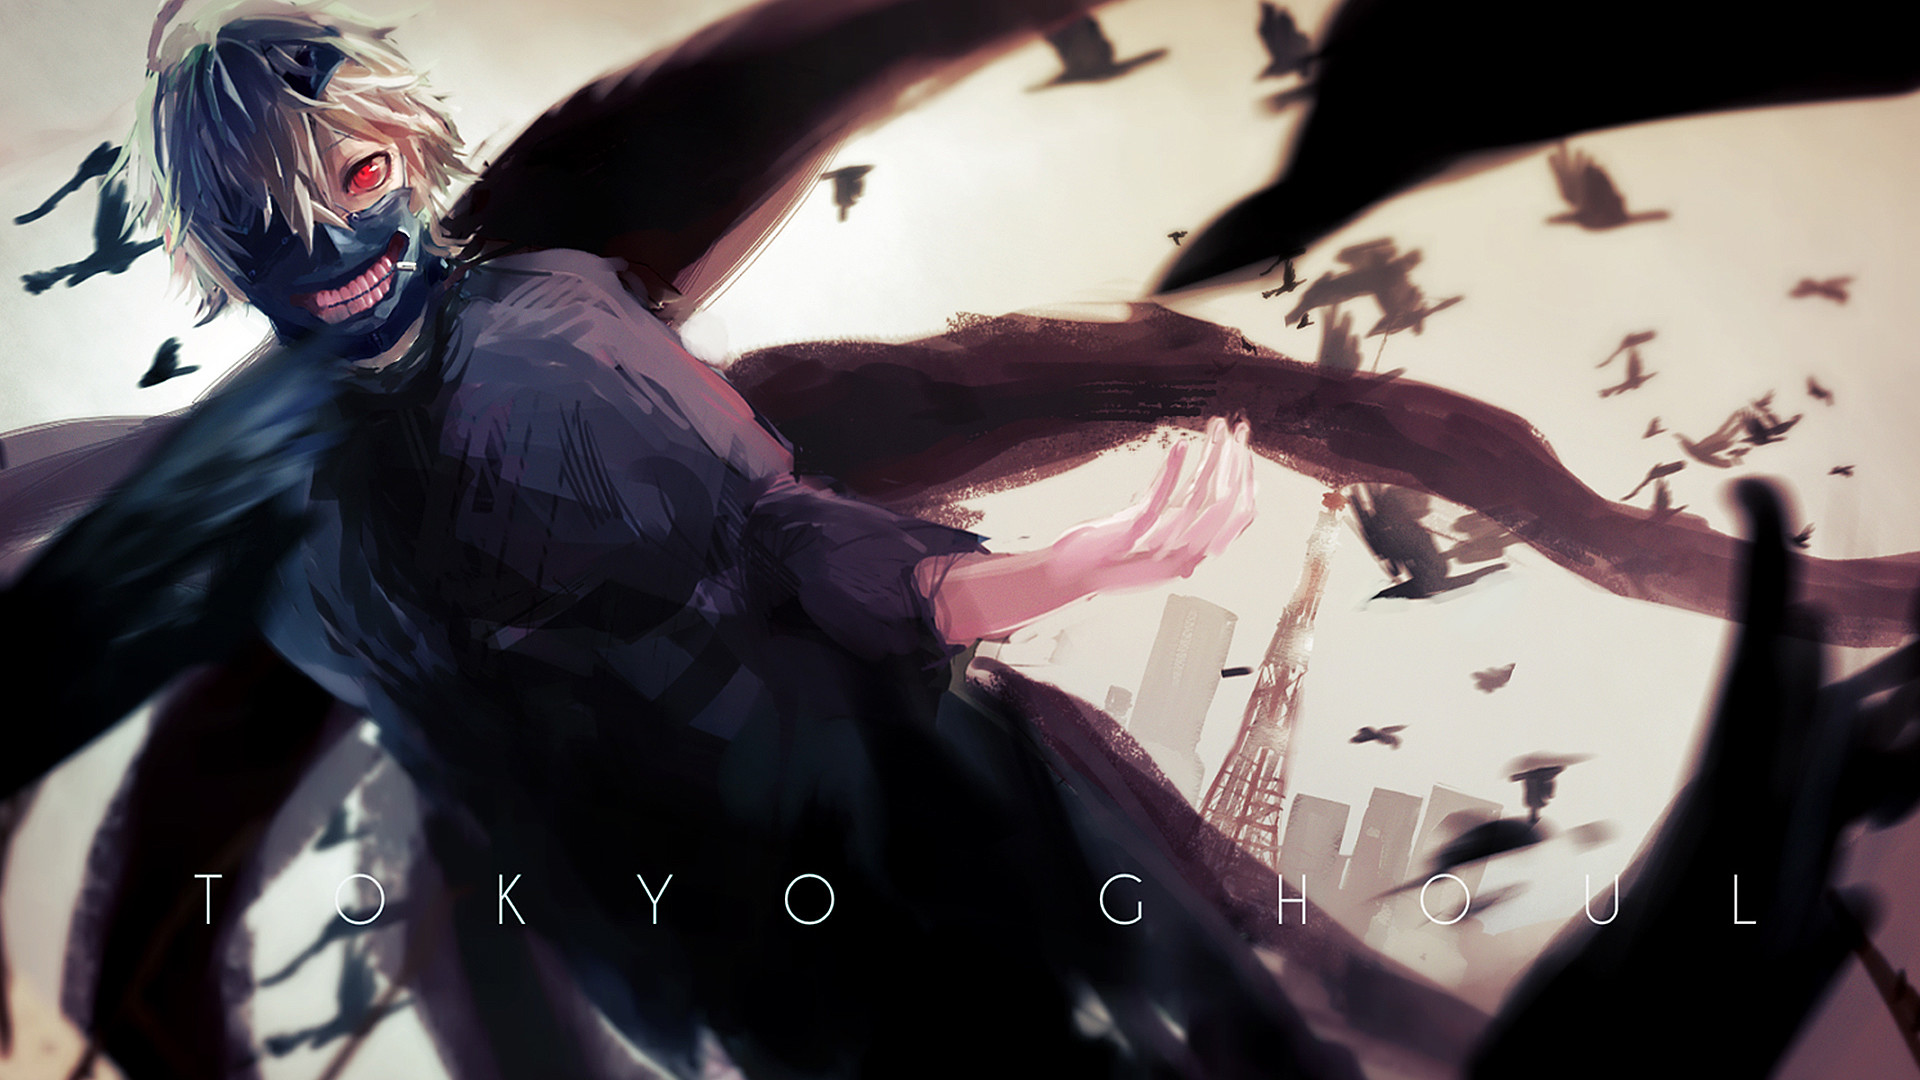 1920x1080 Image for Free Tokyo Ghoul Anime HD Wallpaper 22